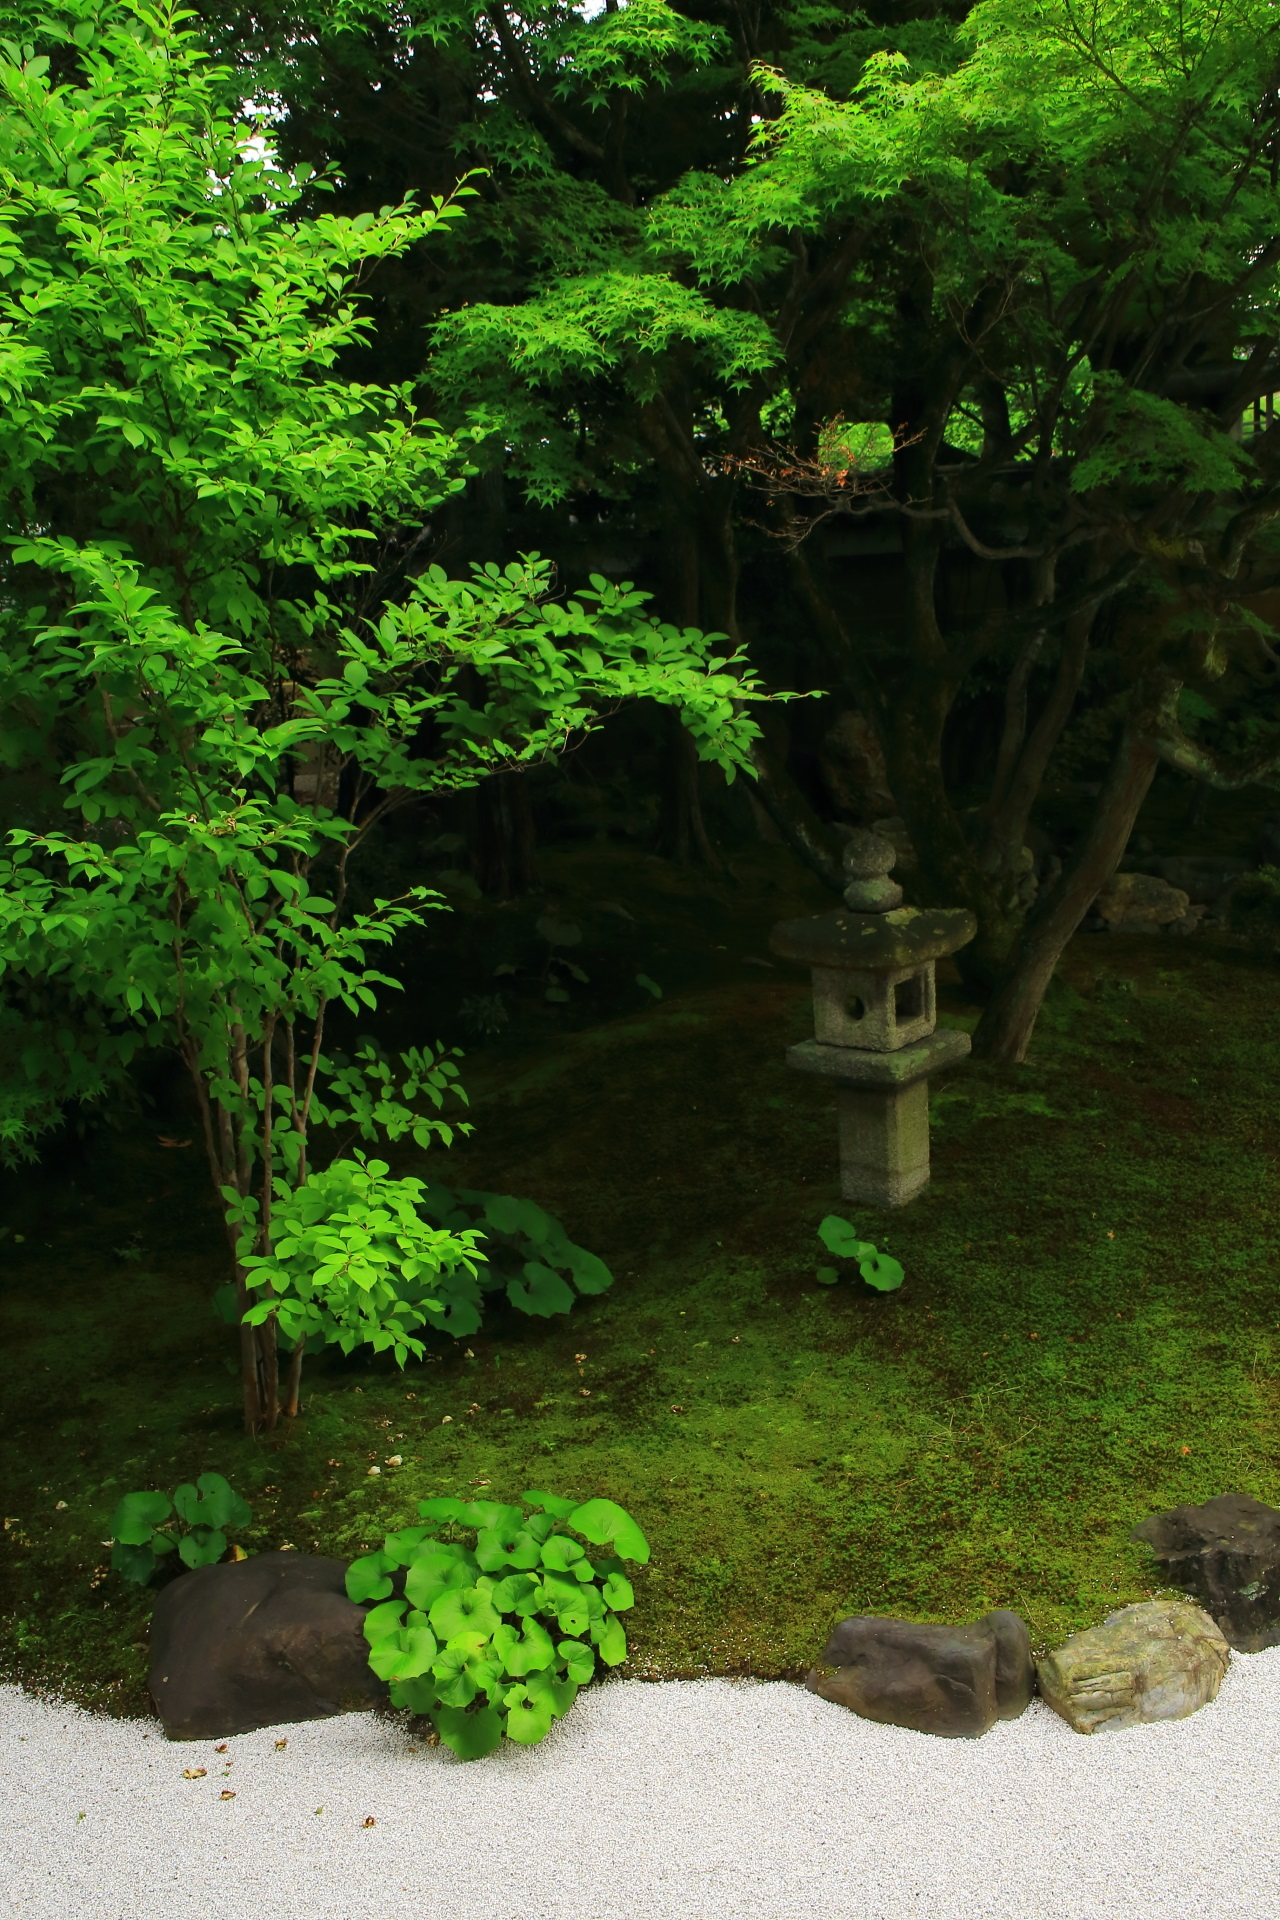 A garden named Shikai-Shodo-no-niwa of green and white sand of Myoken-ji Temple in Kyoto,Japan